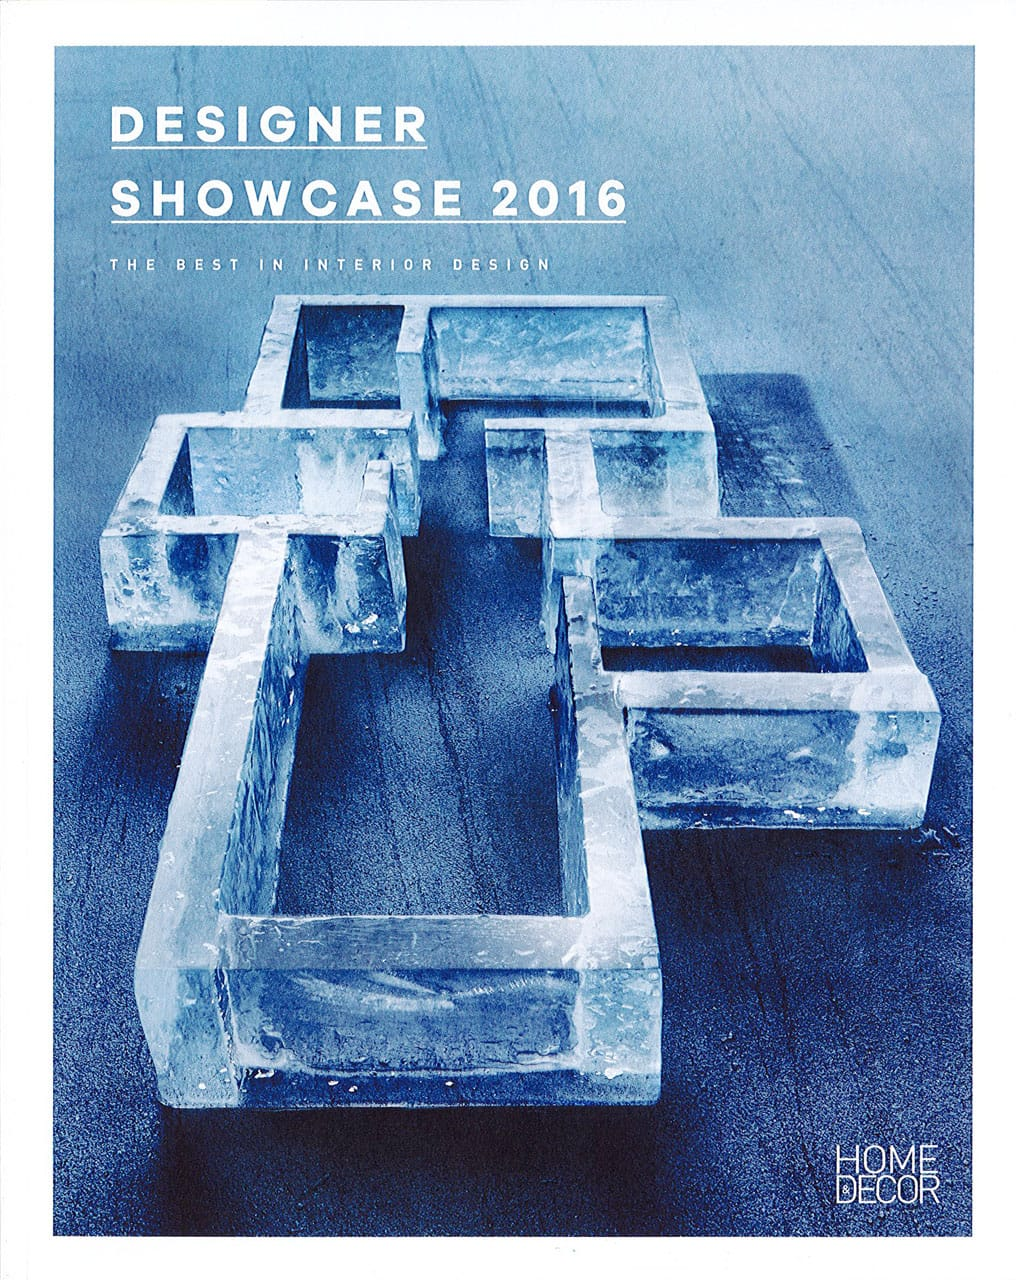 Home & Decor - Designer Showcase 2016